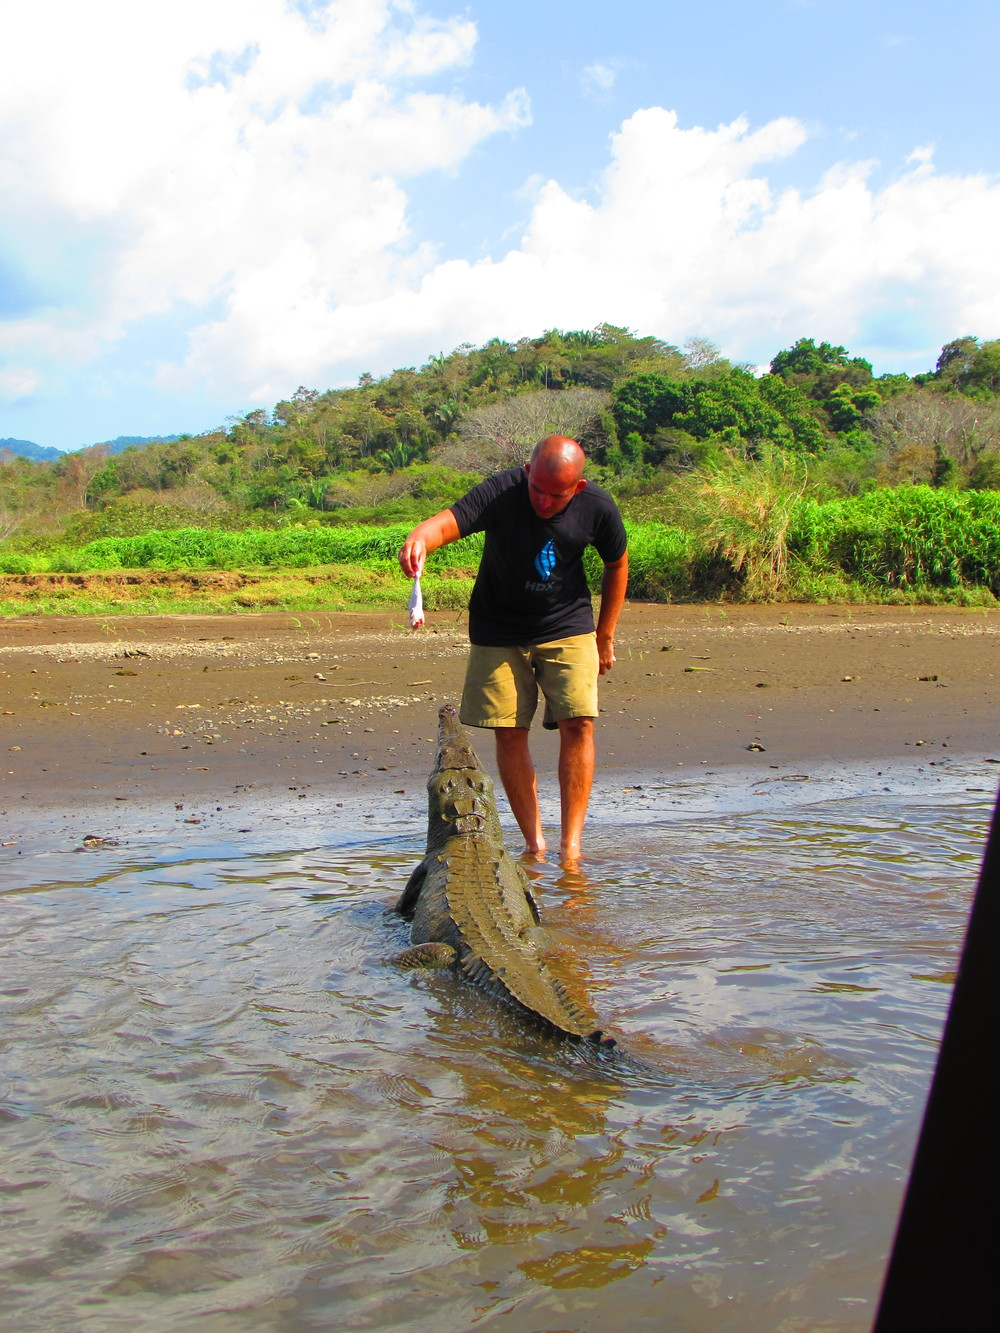 Our new friend Jimmy feeding a Croc!